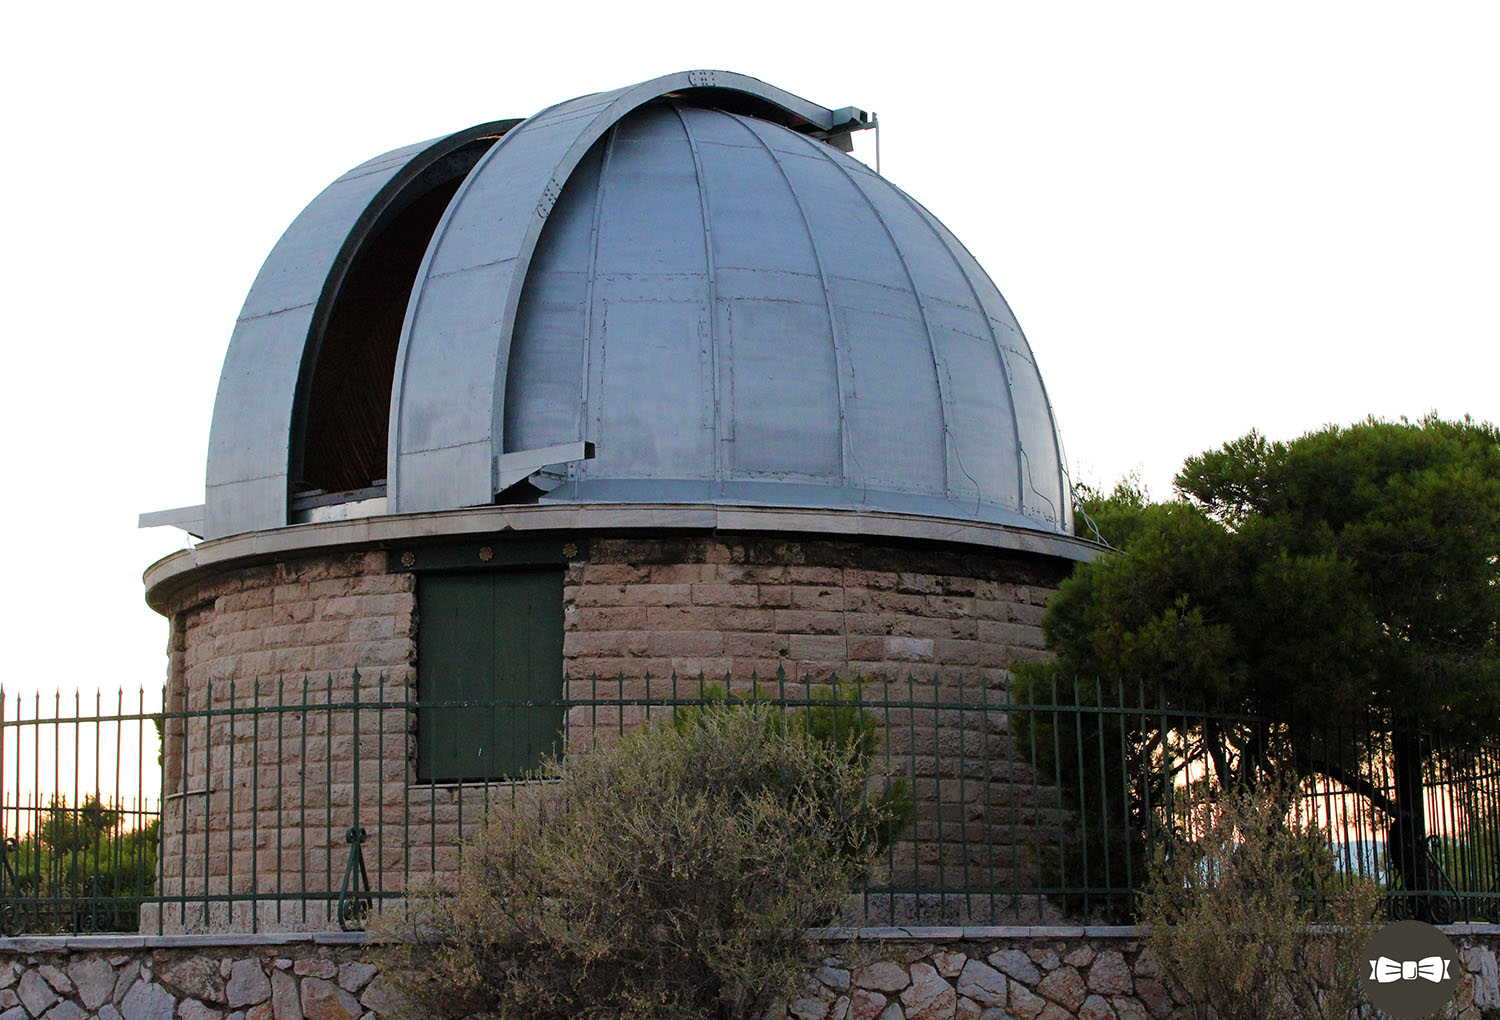 The National Observatory of Athens